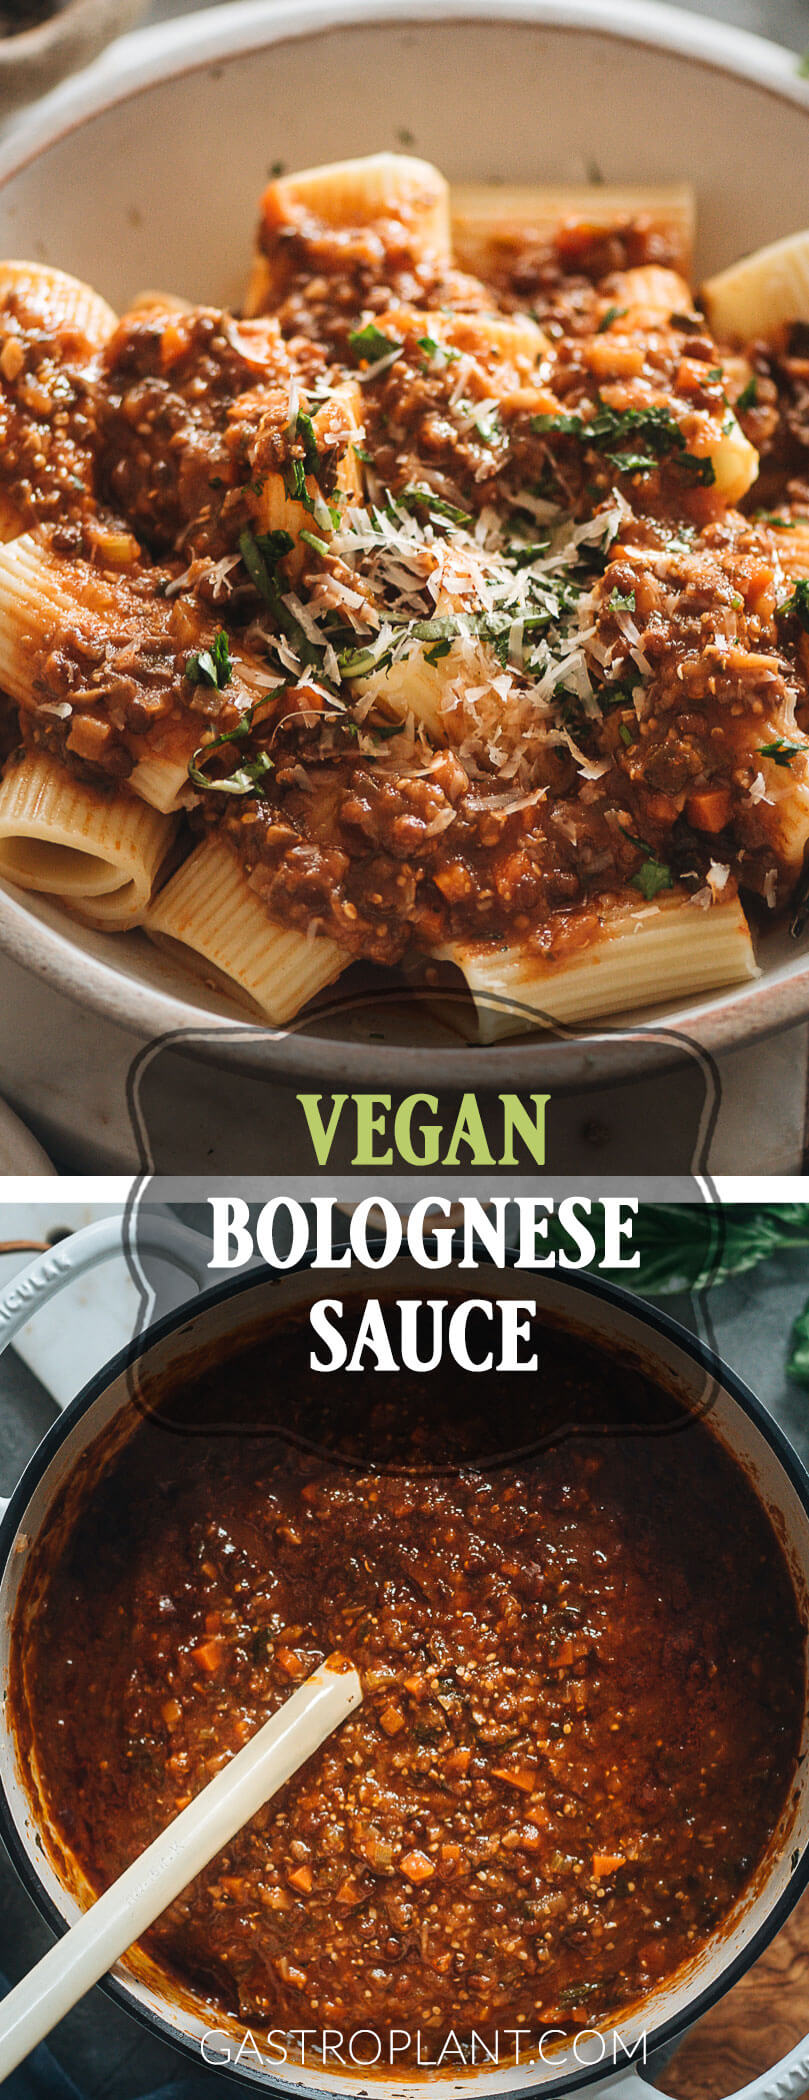 Healthy Meaty Vegan Bolognese Sauce Collage